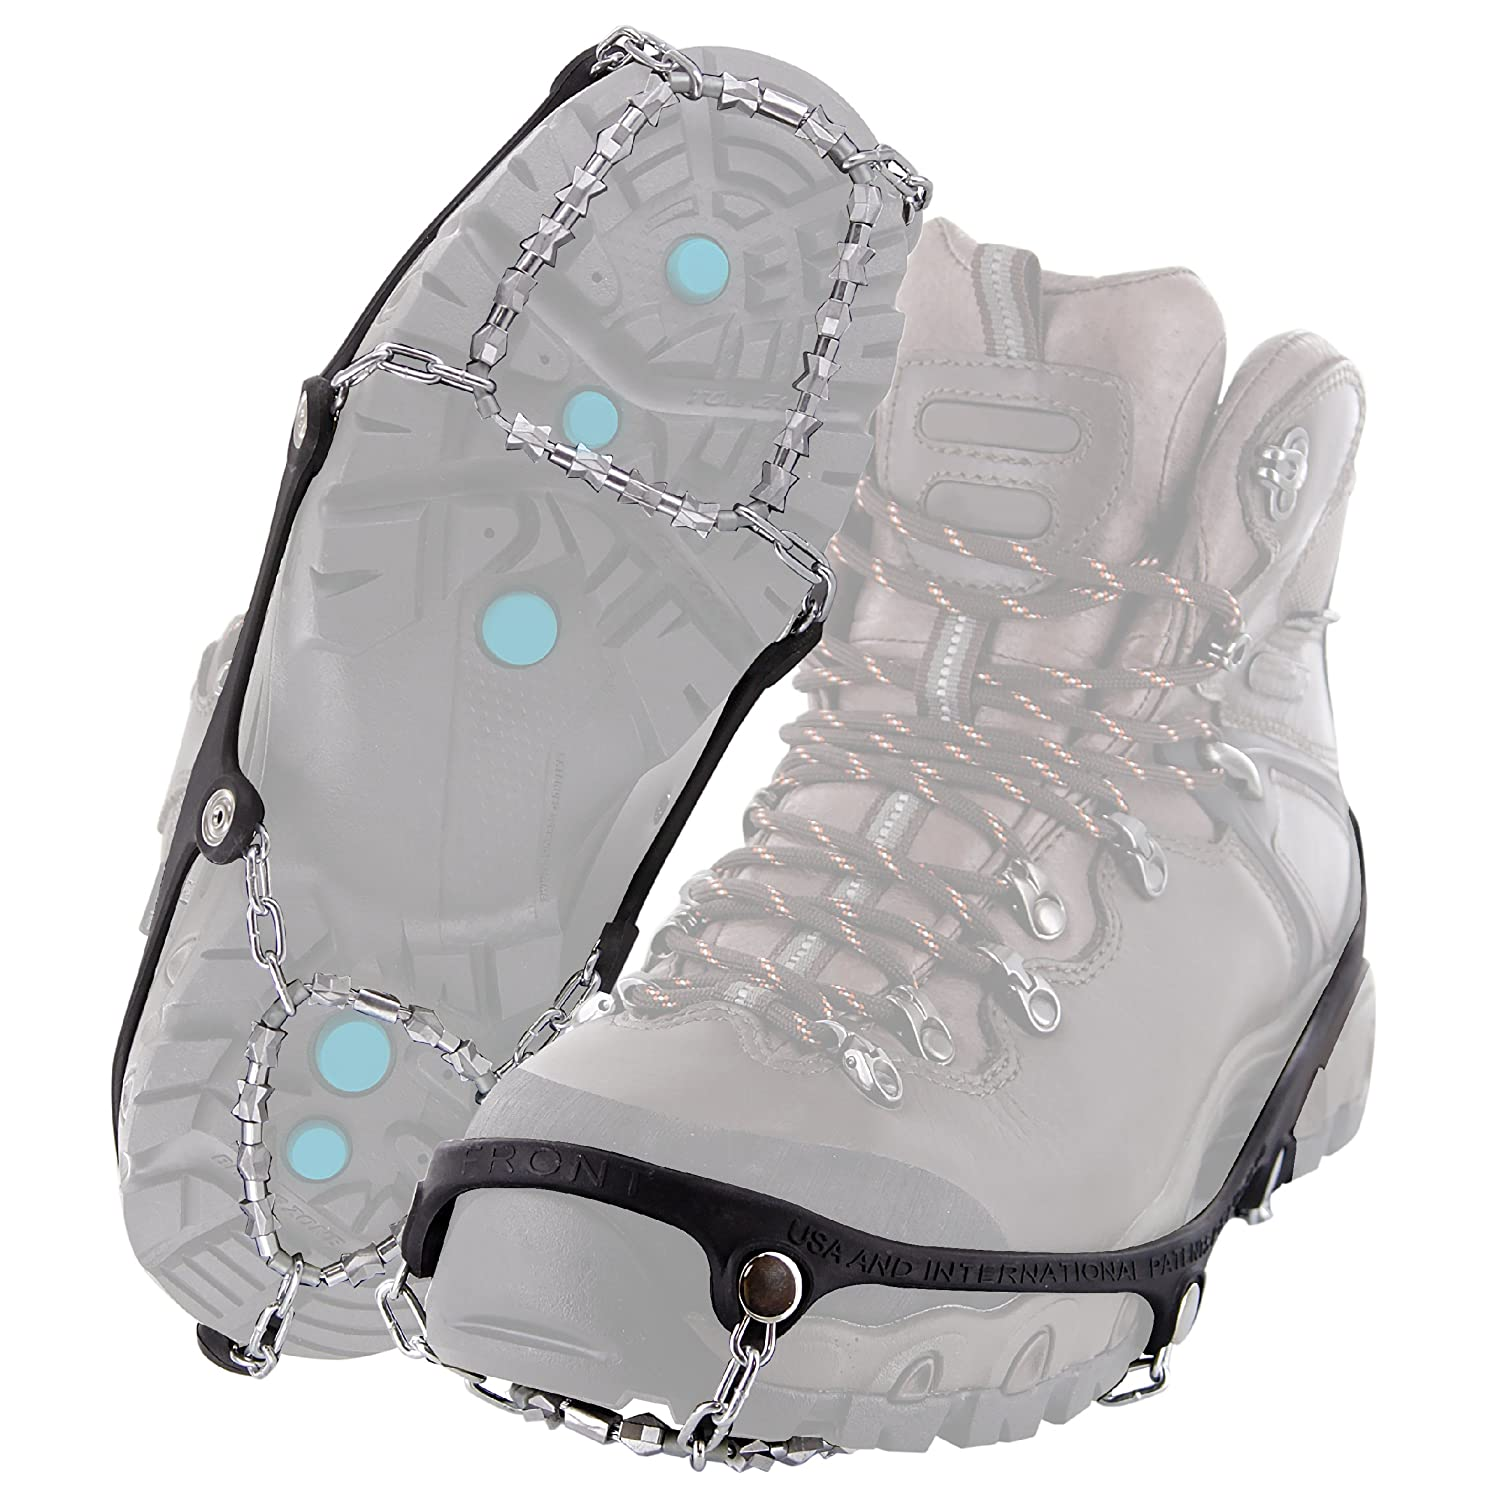 3b89ce6495329 Amazon.com : Yaktrax Diamond Grip All-Surface Traction Cleats for Walking  on Ice and Snow (1 Pair), Large : Sports & Outdoors